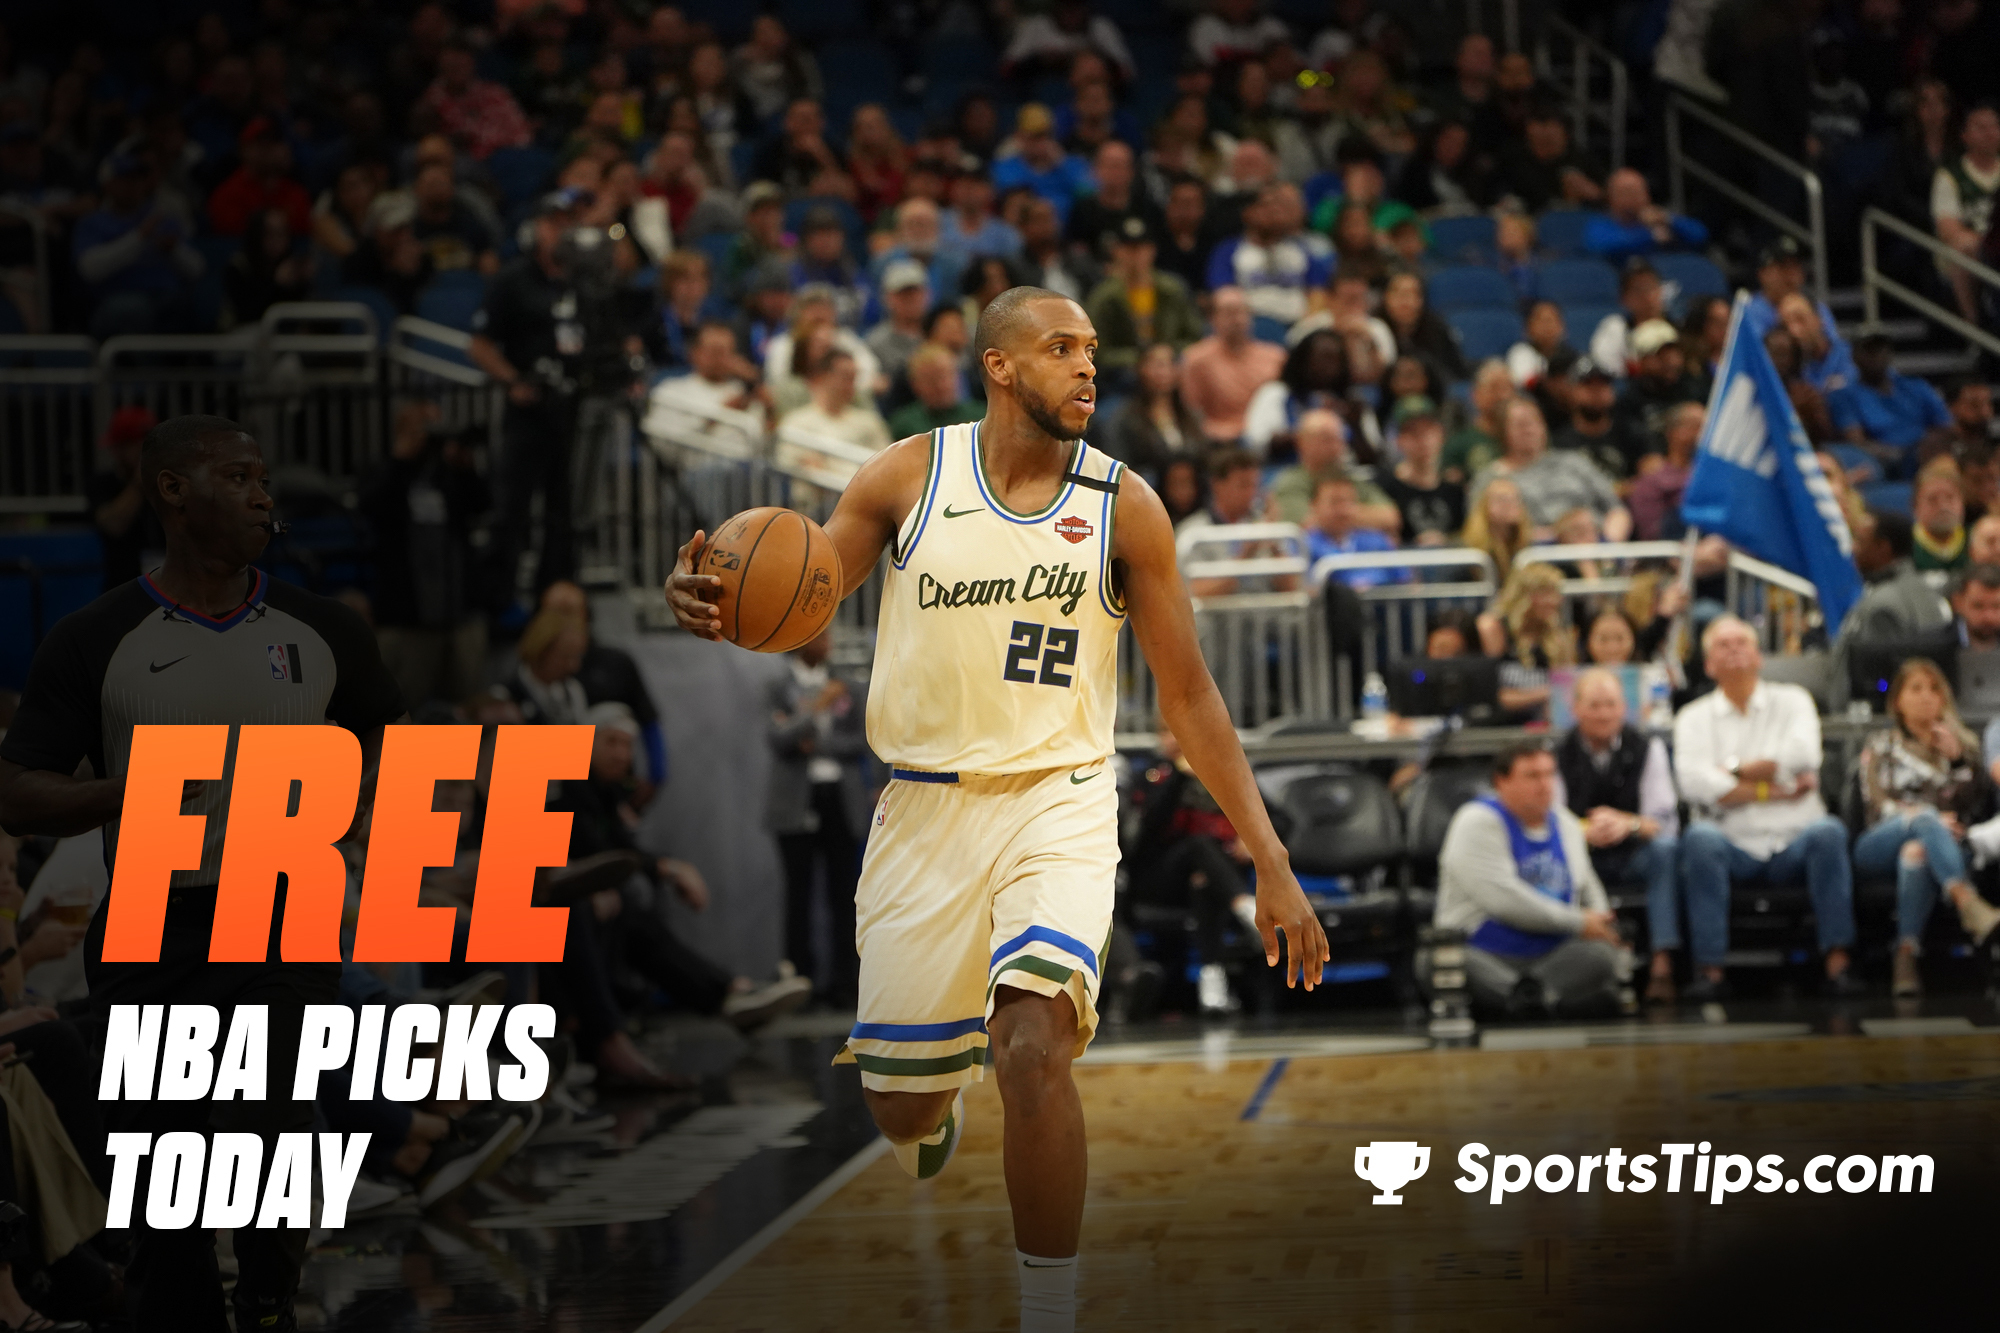 Free NBA Picks Today for Thursday, February 25th, 2021